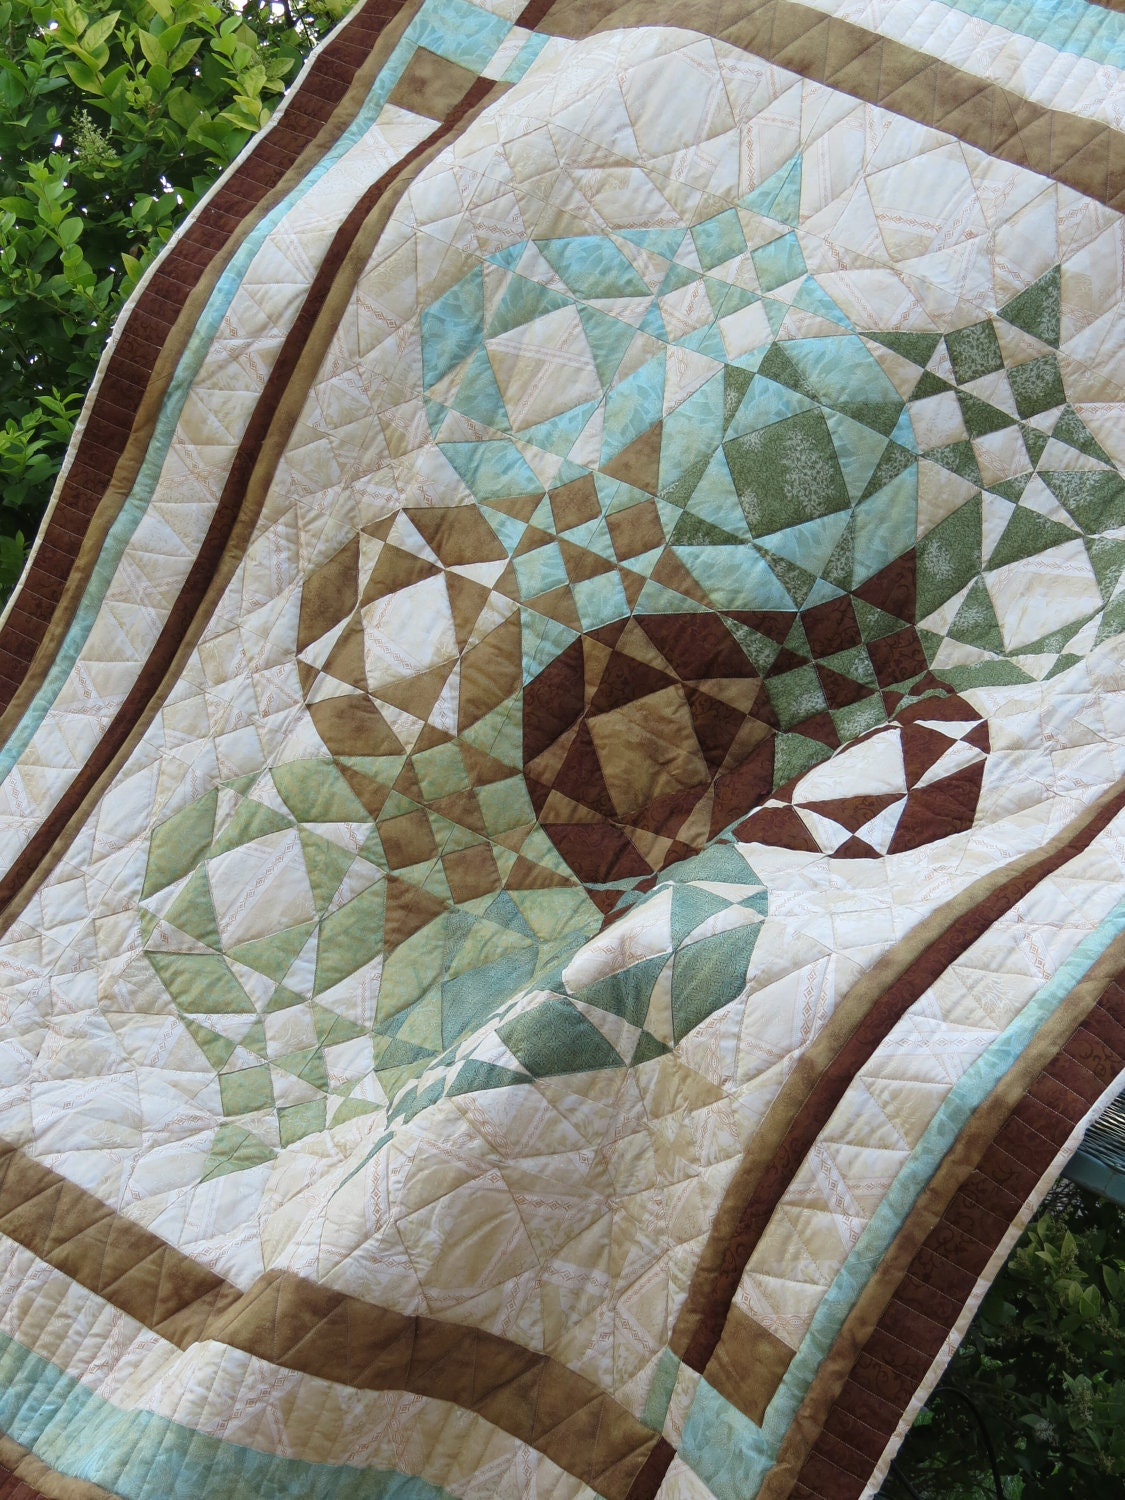 Quilt, Japanese Lantern, Aqua, Brown, Green - CocobytheLake